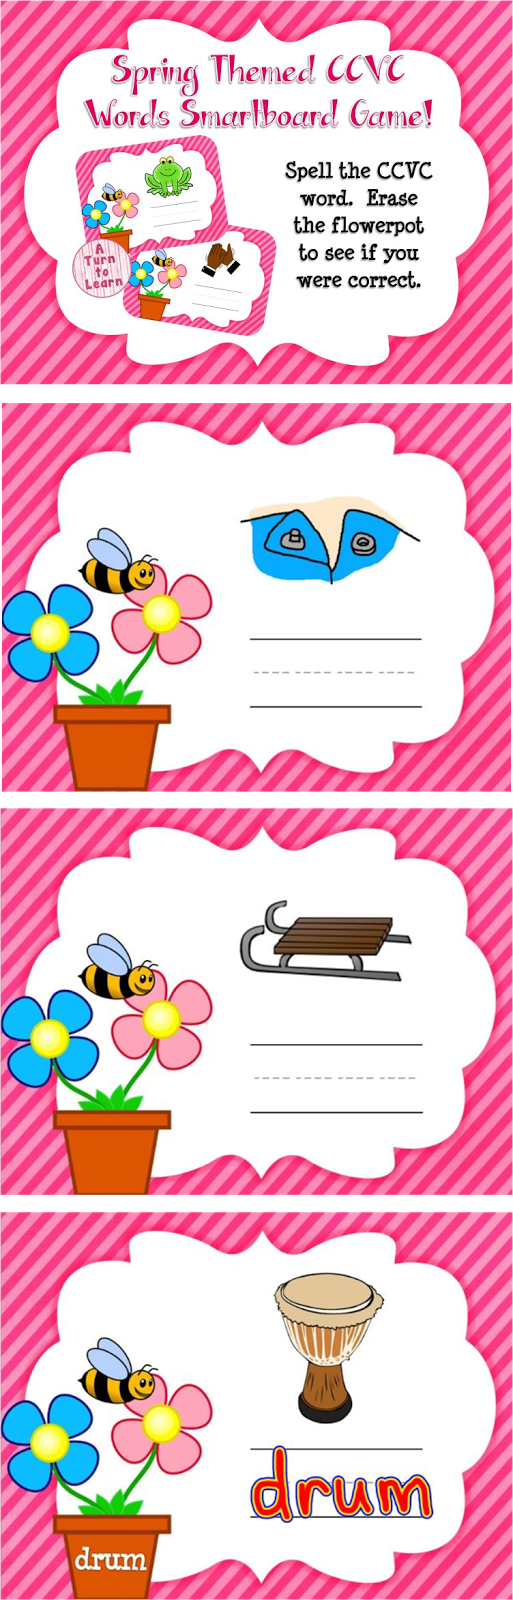 Spring Themed CCVC Words for Smartboard or Promethean Board!